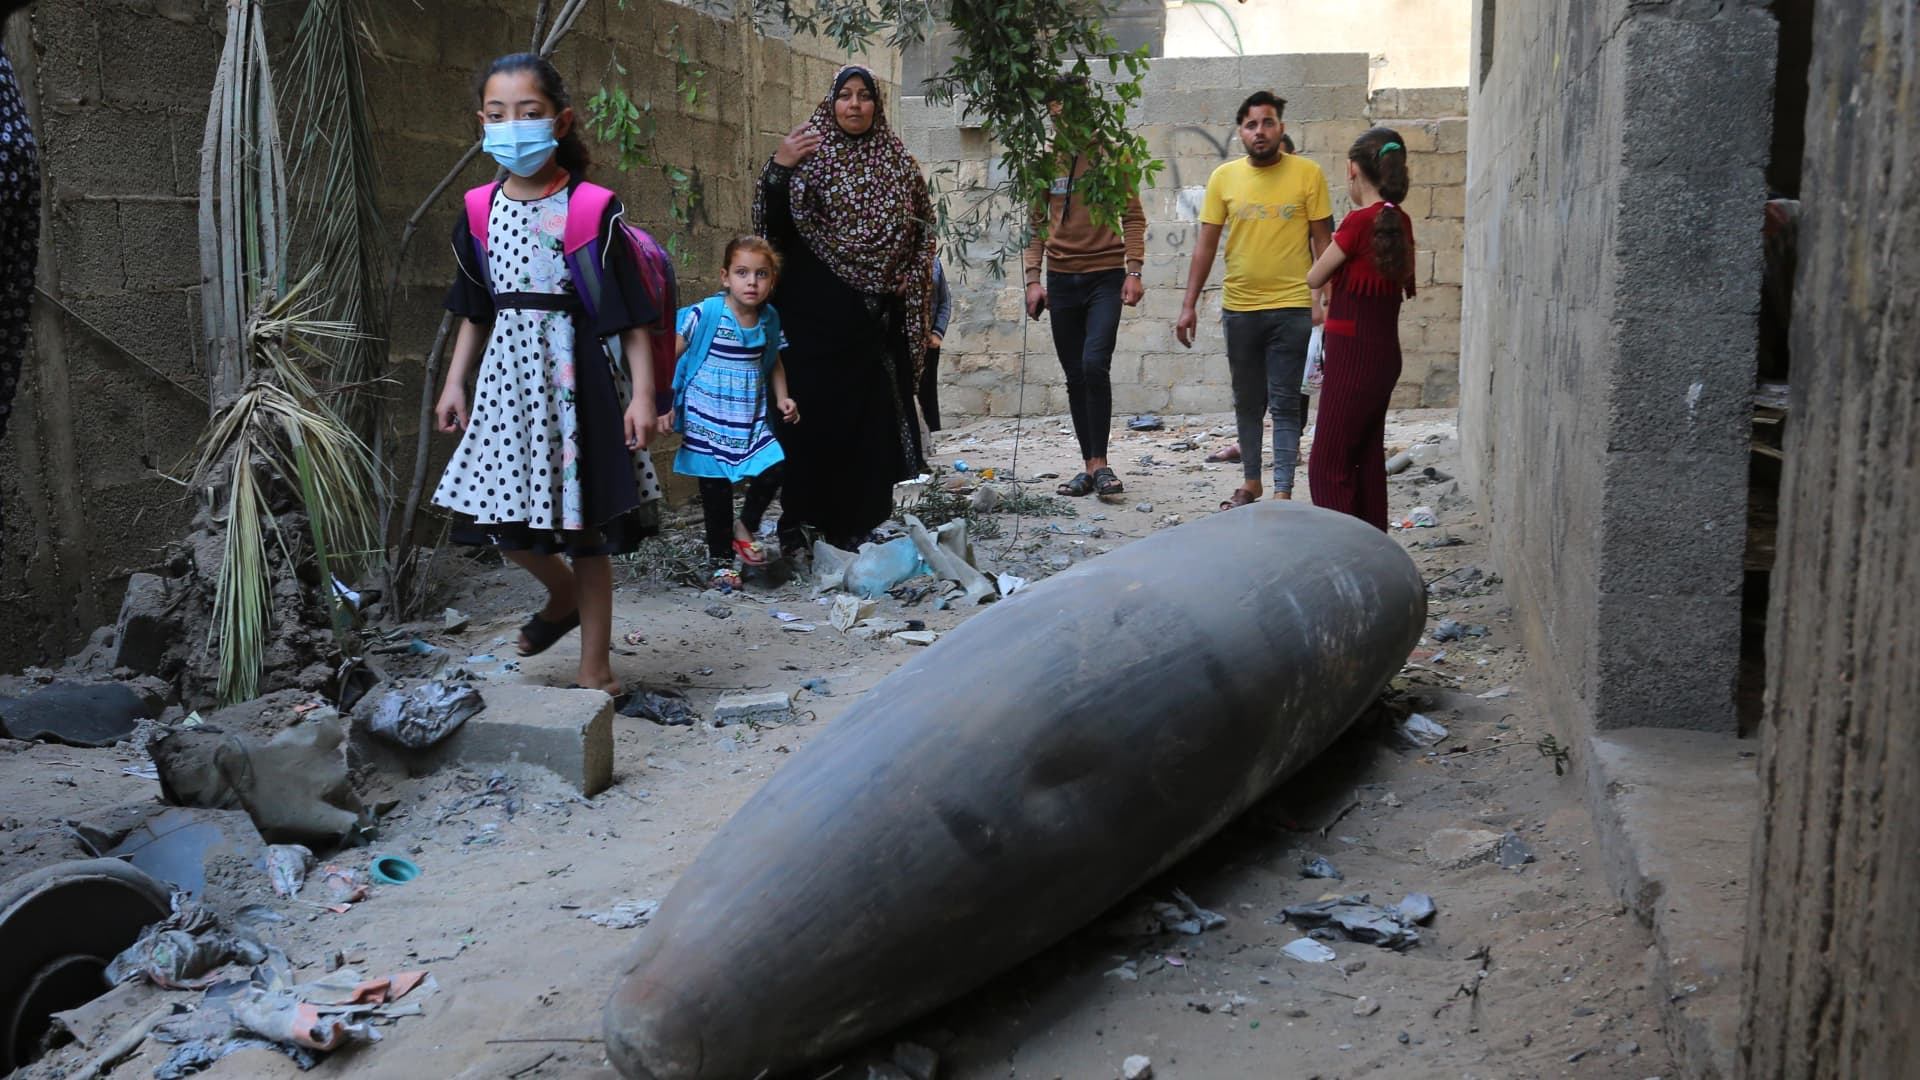 People look at an unexploded missile thrown by Israel in al-Rimal neighborhood as Israeli warplanes continue to carry out airstrikes in Gaza City, Gaza on May 18, 2021.